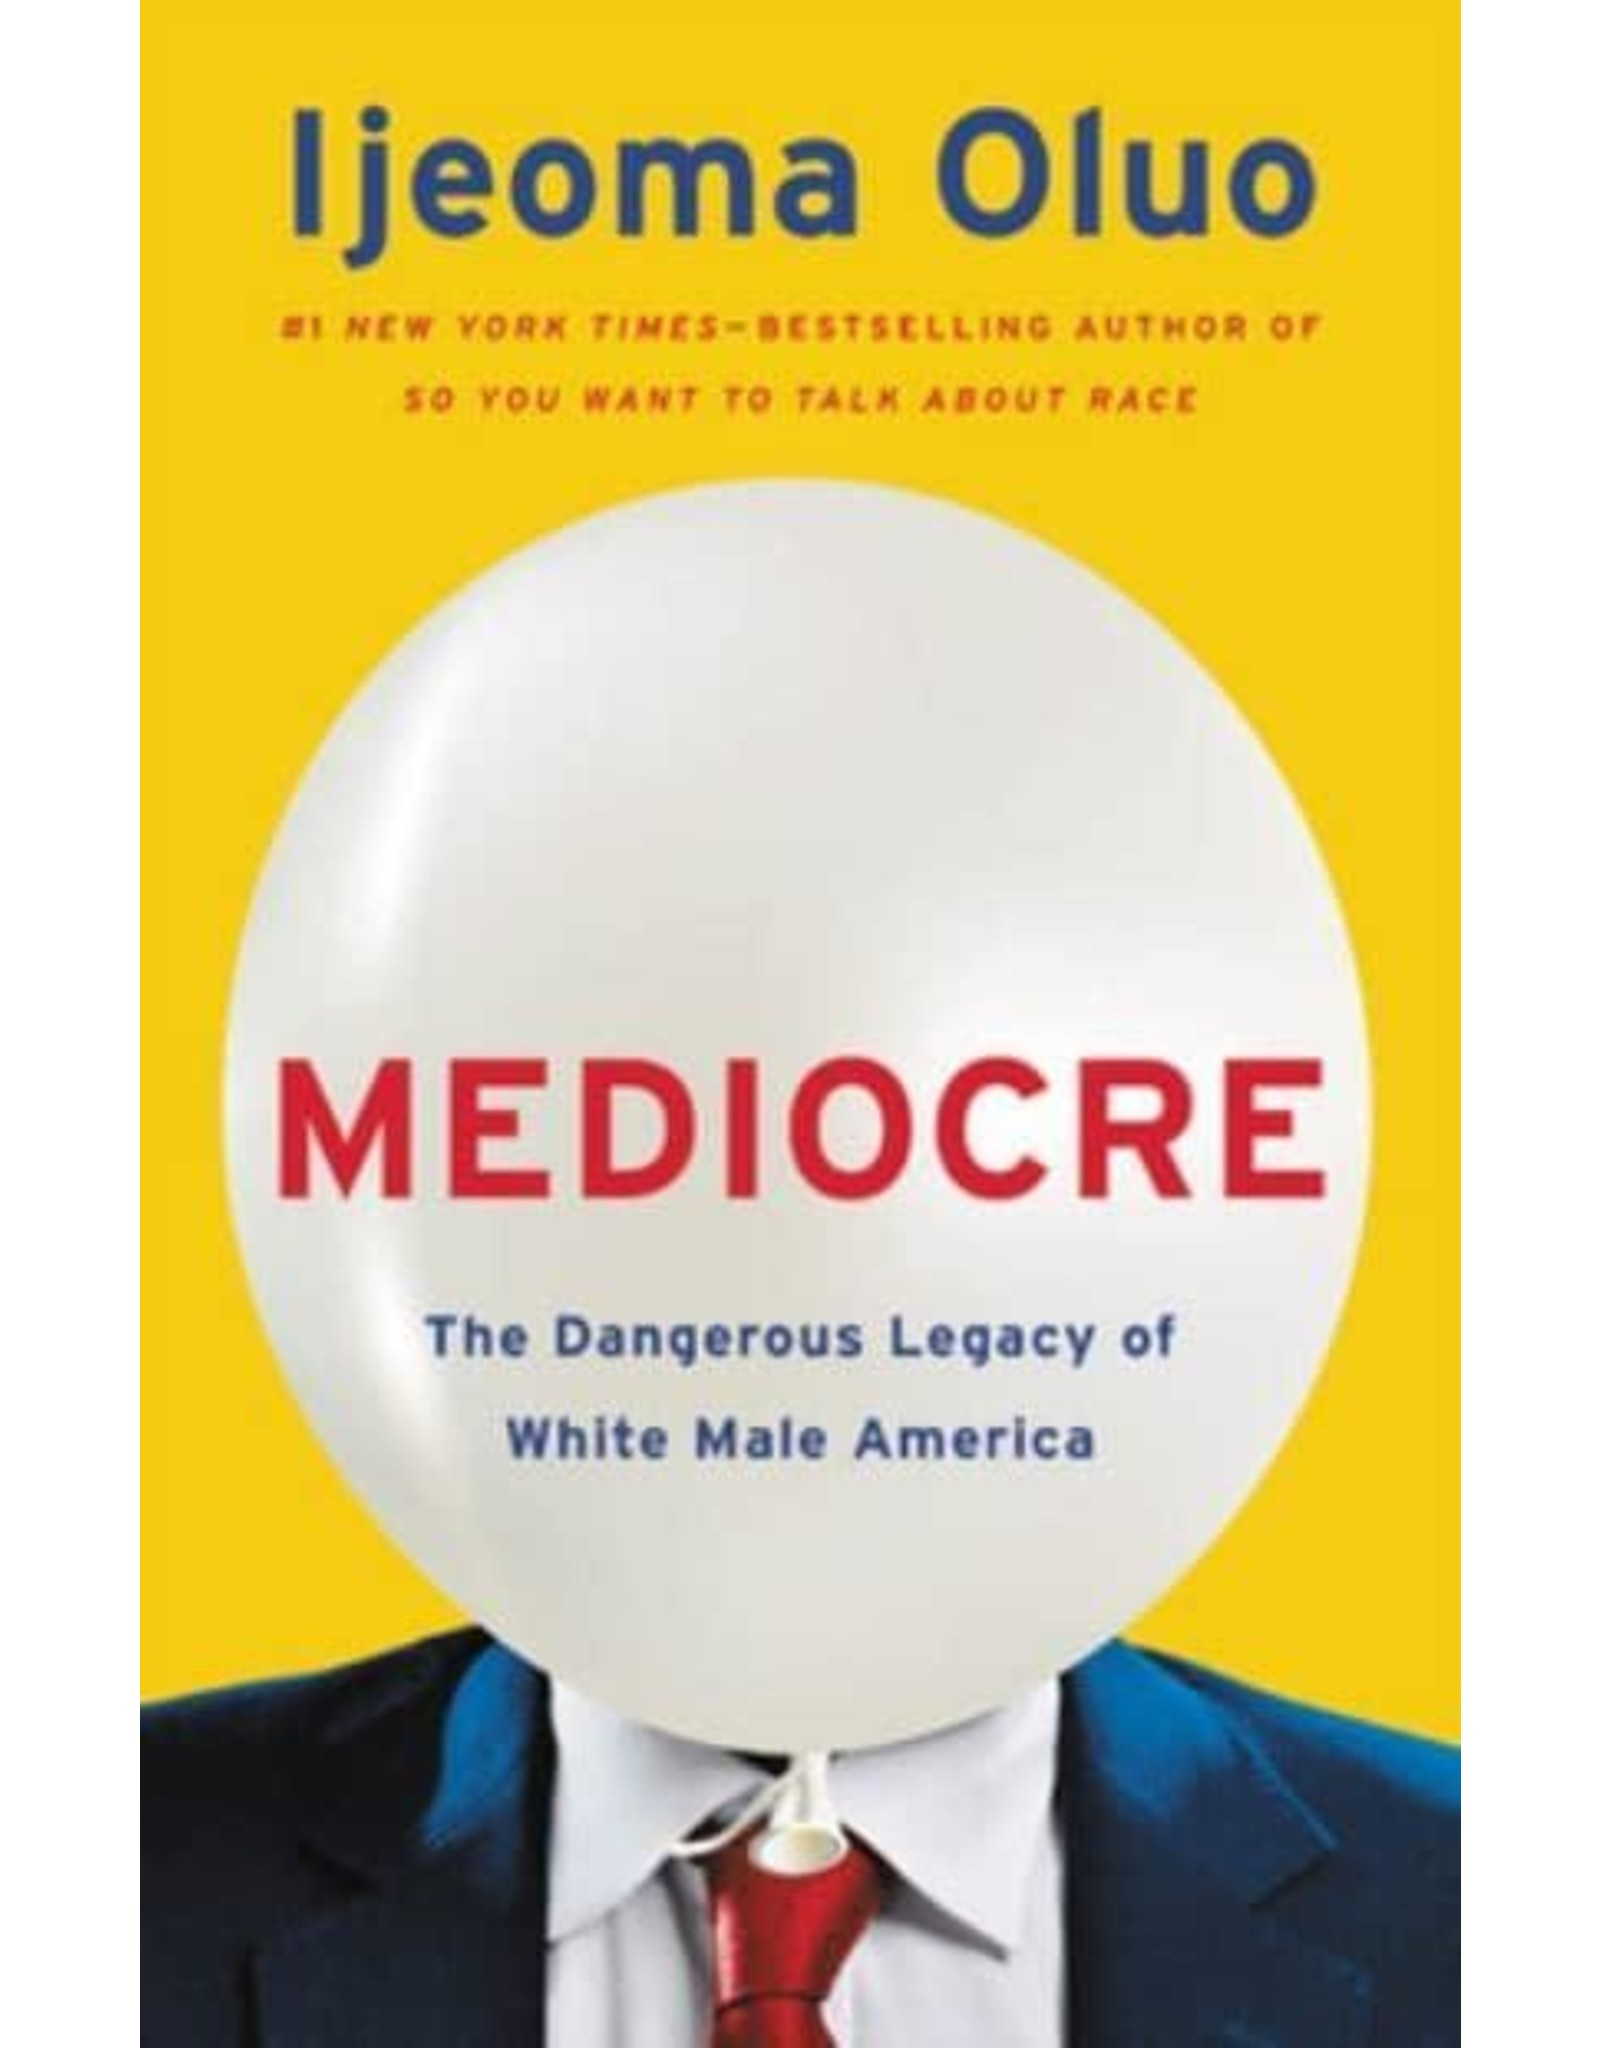 Books Mediocre: The Dangerous Legacy of White Male America by Ijeoma Oluo